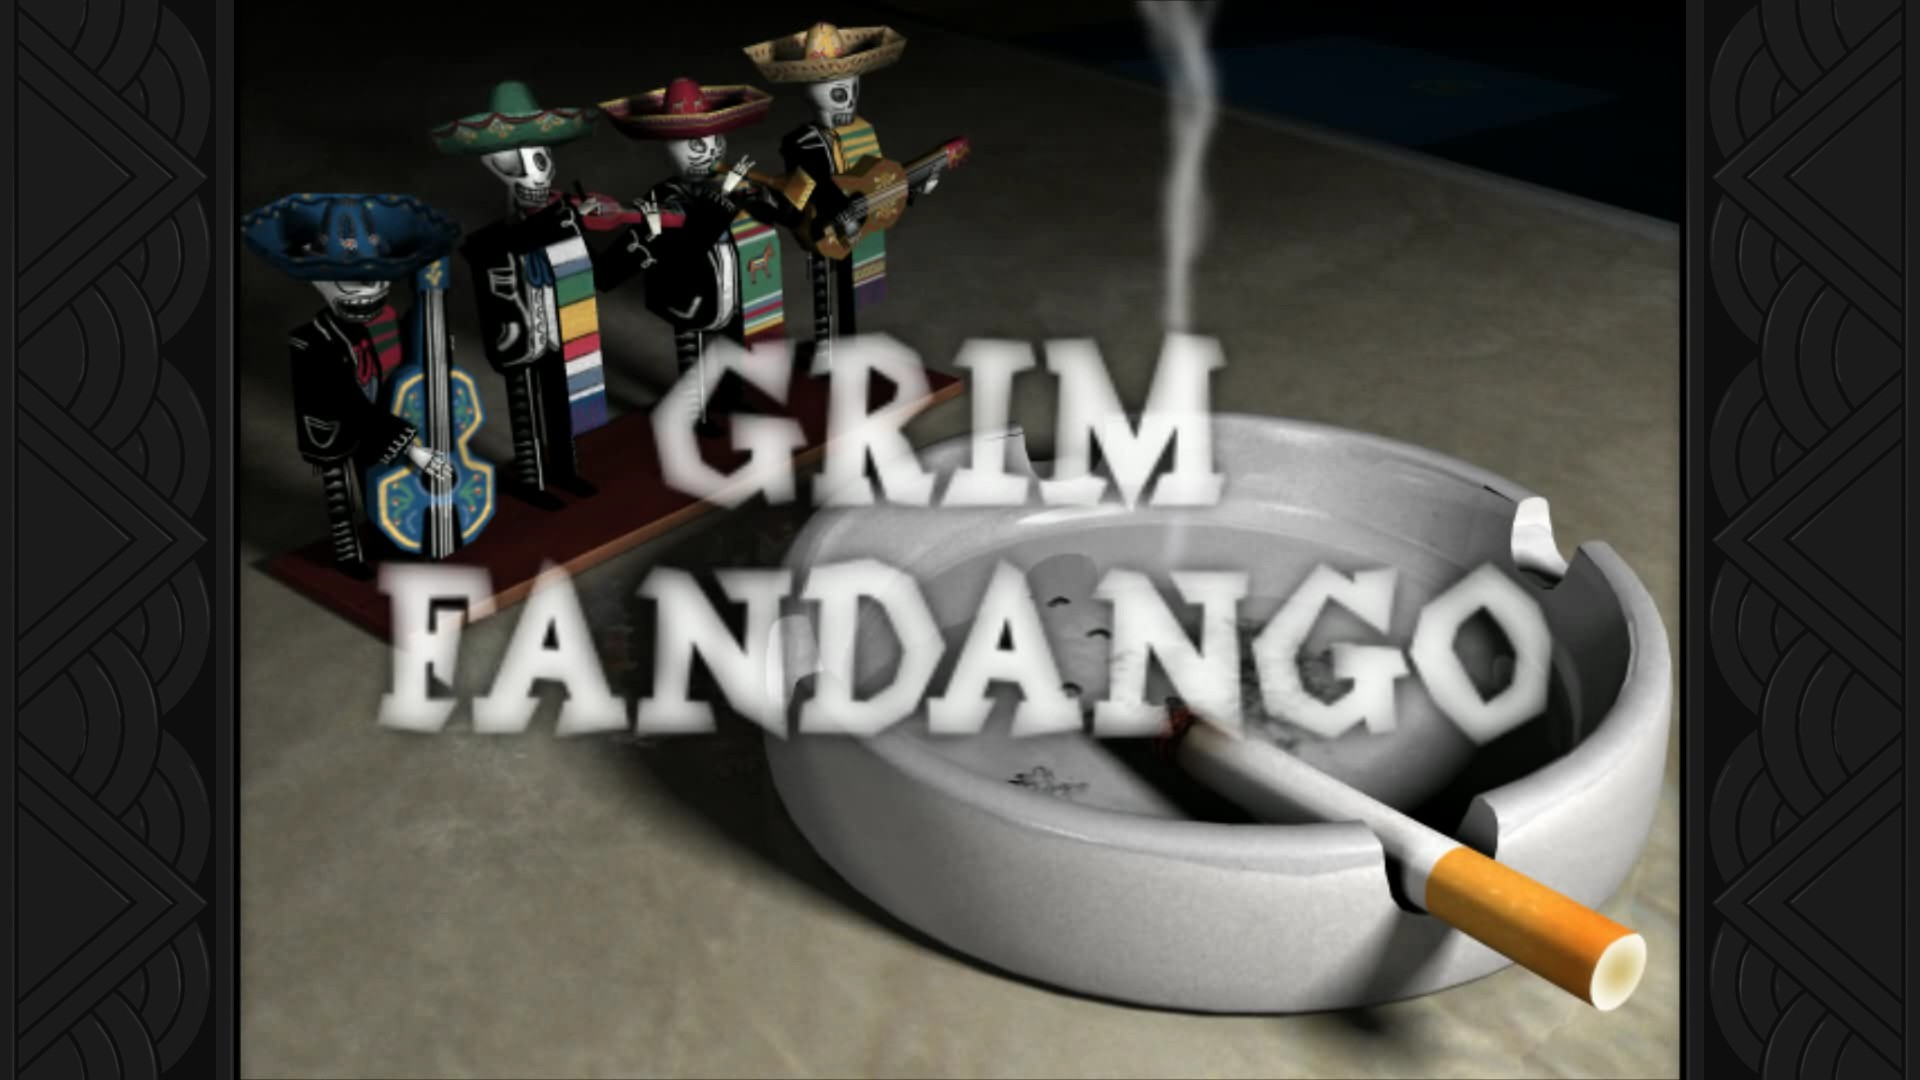 High Resolution Wallpaper | Grim Fandango 1920x1080 px